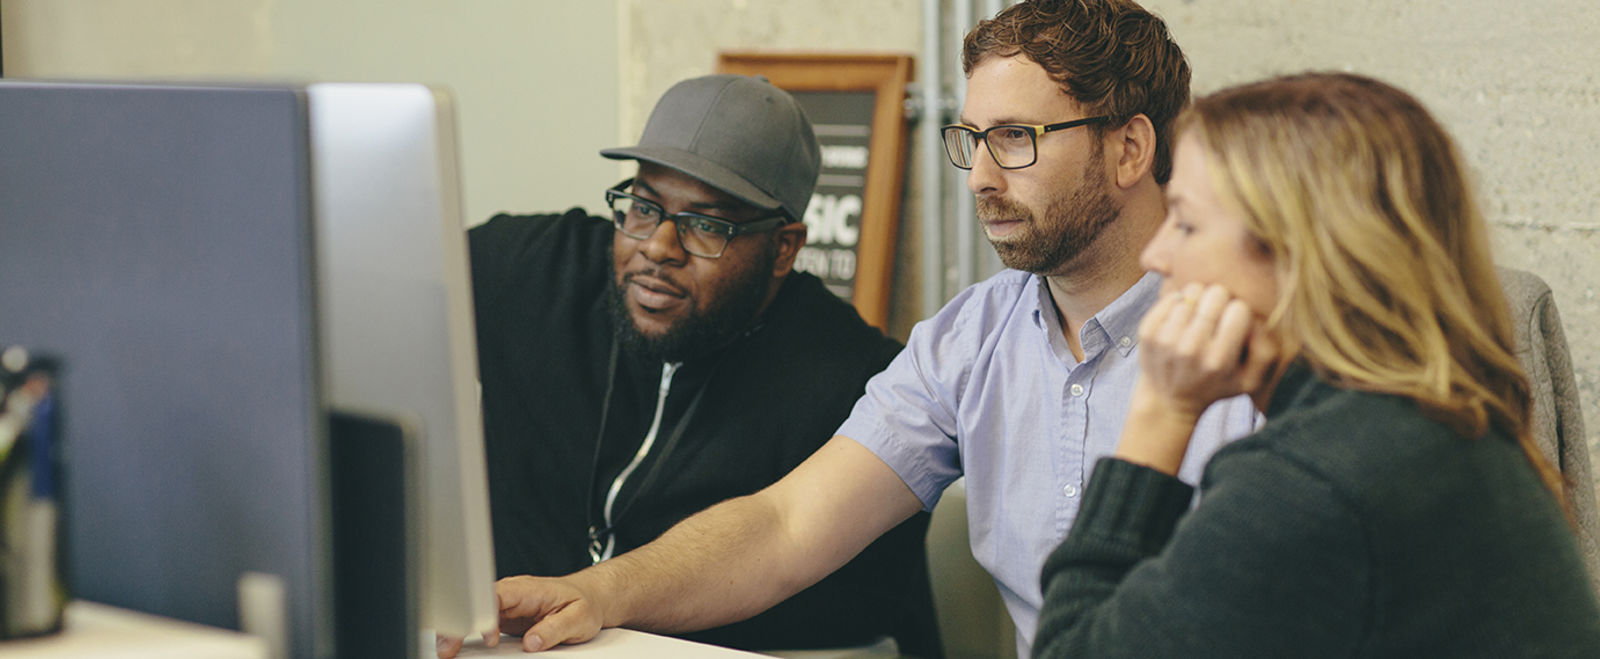 Three Sonos employees collaborating on a computer.